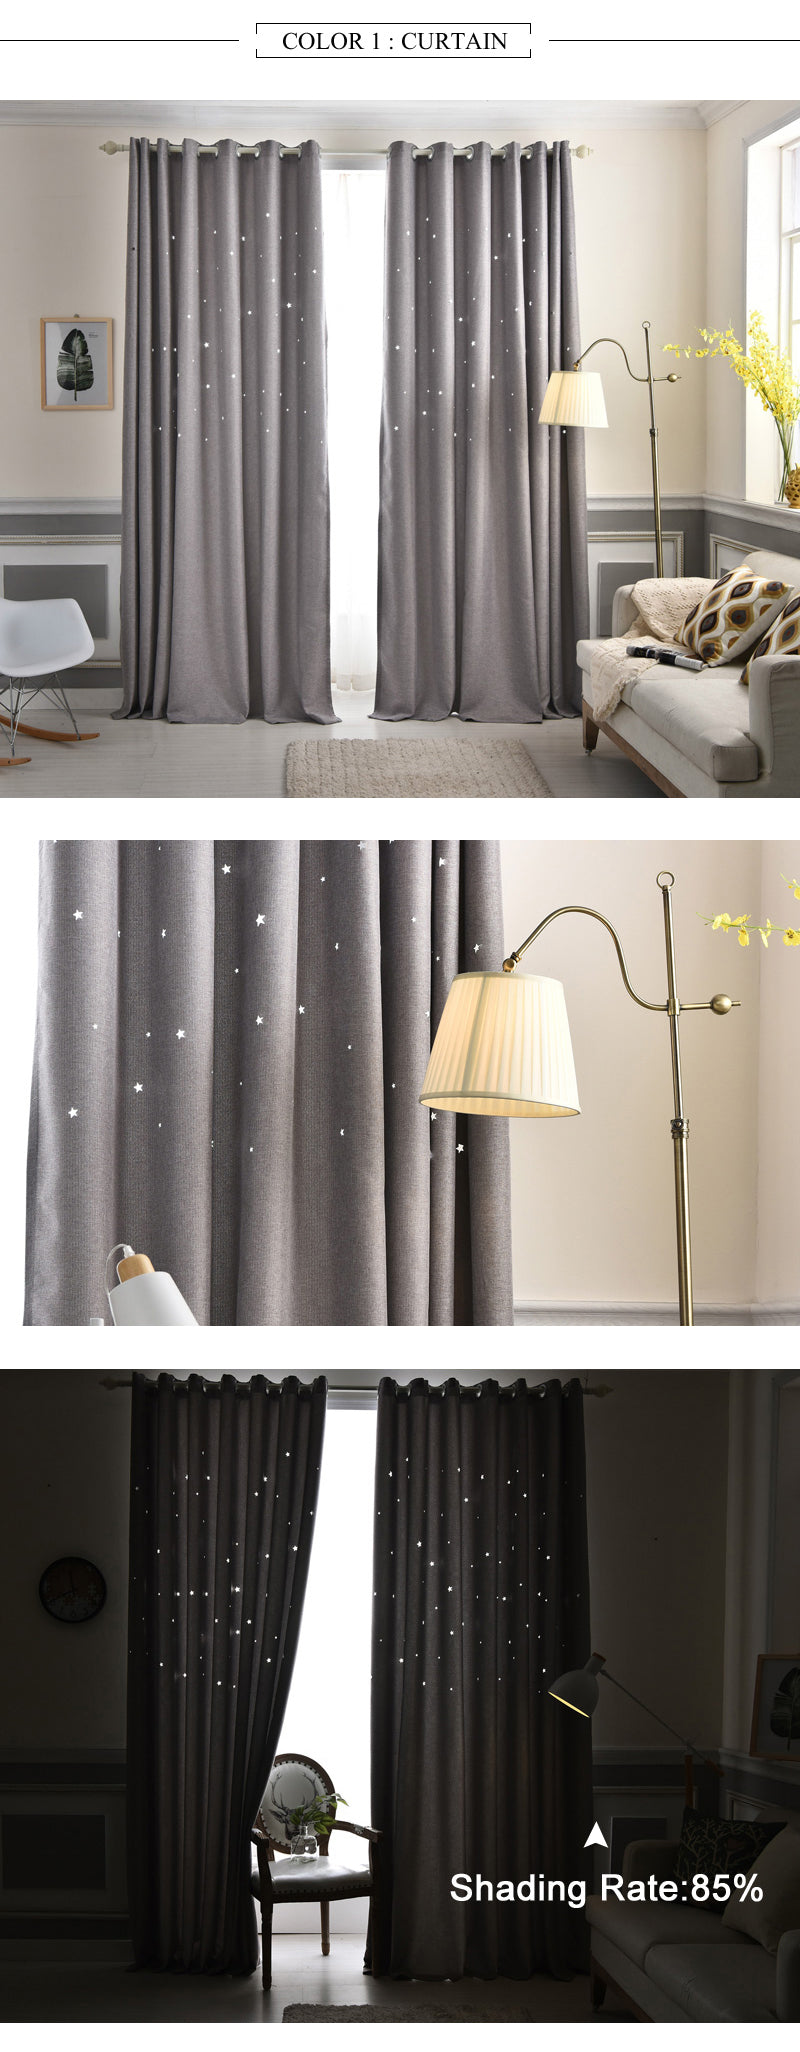 treatments popular window drape list panel styles curtain bedroom of and